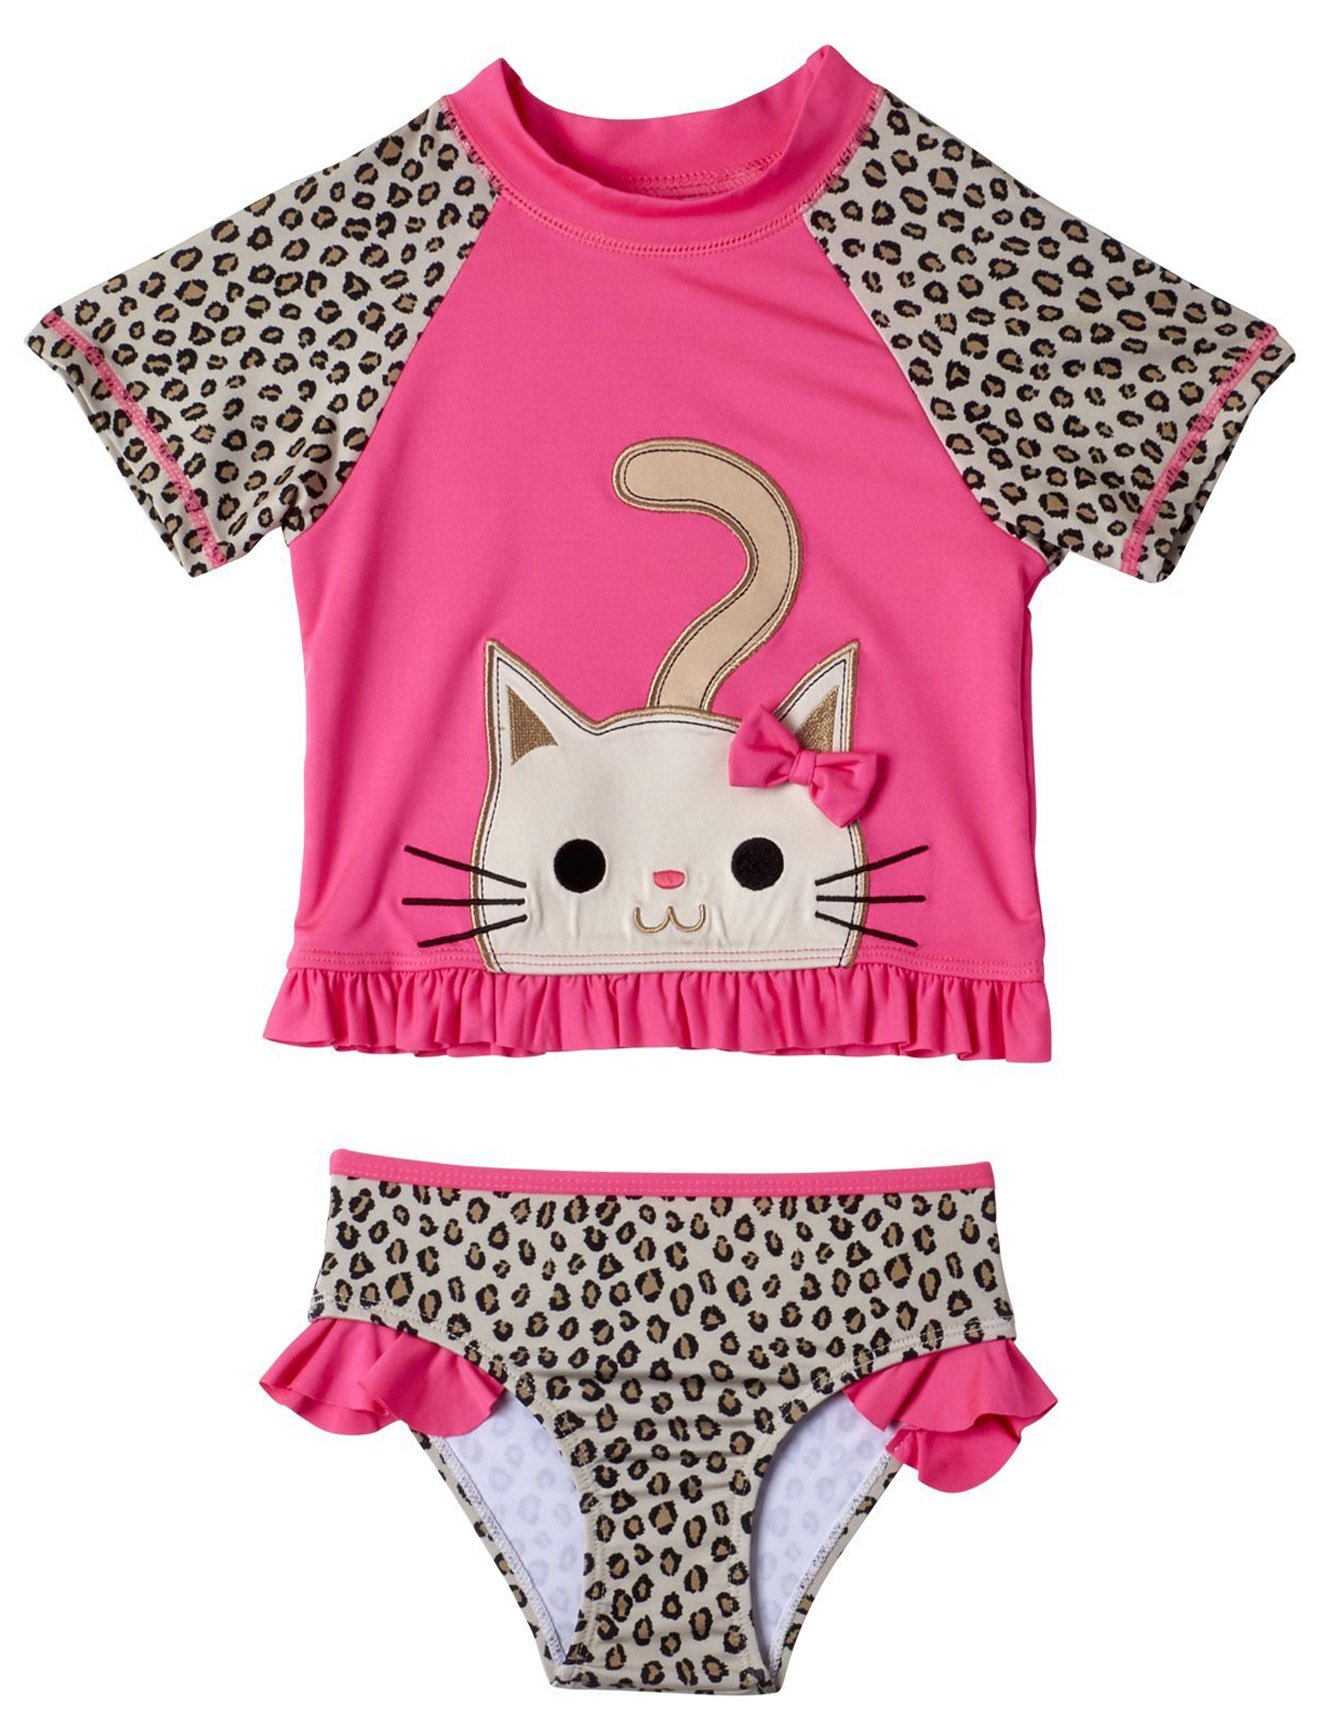 Wippette Girls 2-Piece Rashguard Sun Protection Swimsuit Set, Cheetah Print